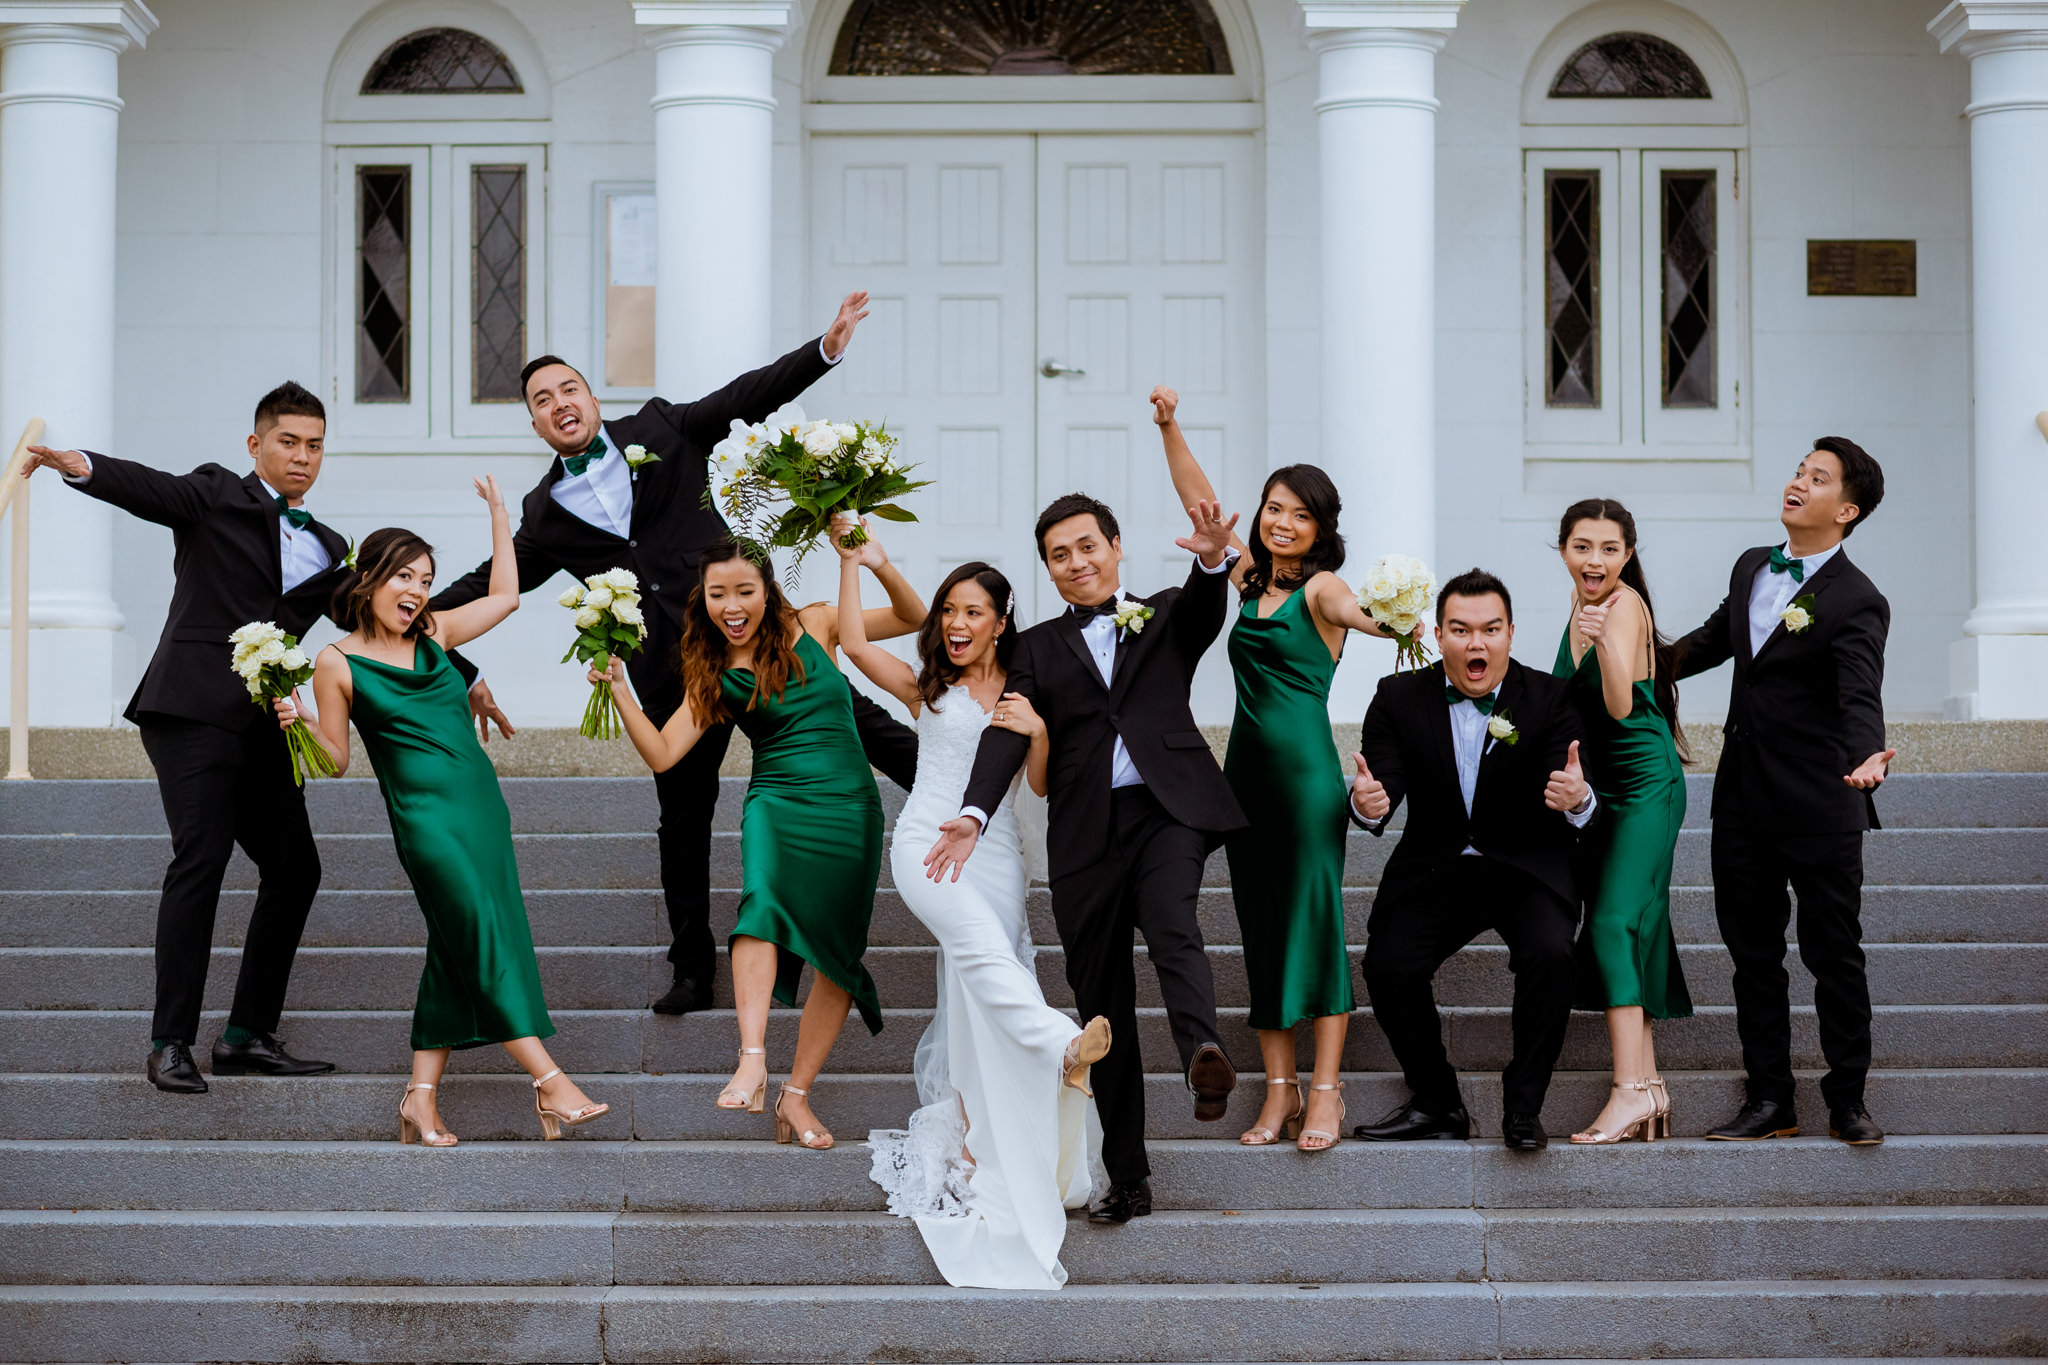 Bridal party having fun together on the steps of the church